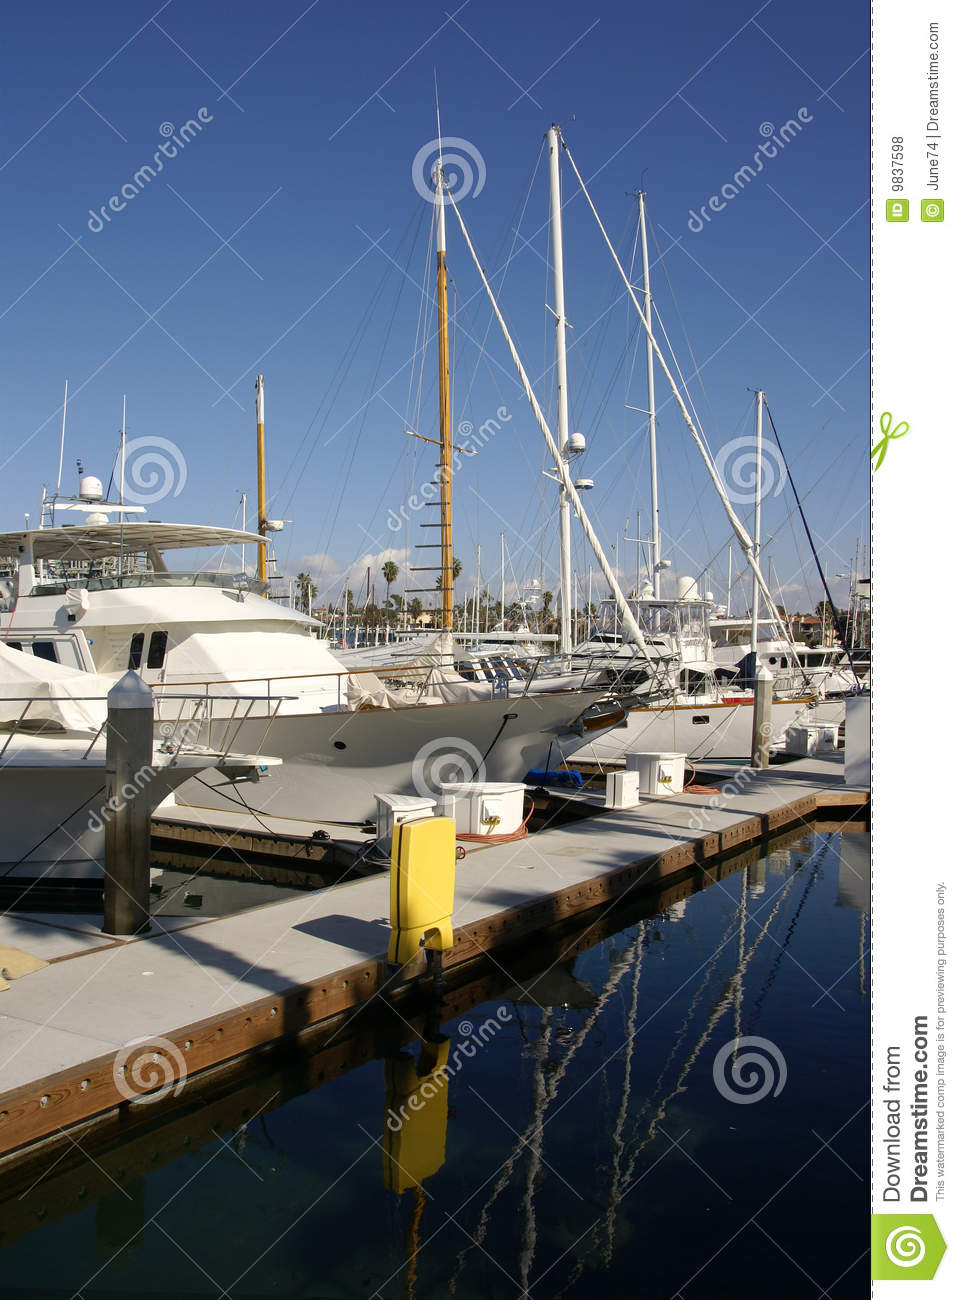 Sailing Yachts Parked In A Harbor Royalty-Free Stock Image | CartoonDealer.com #45128410